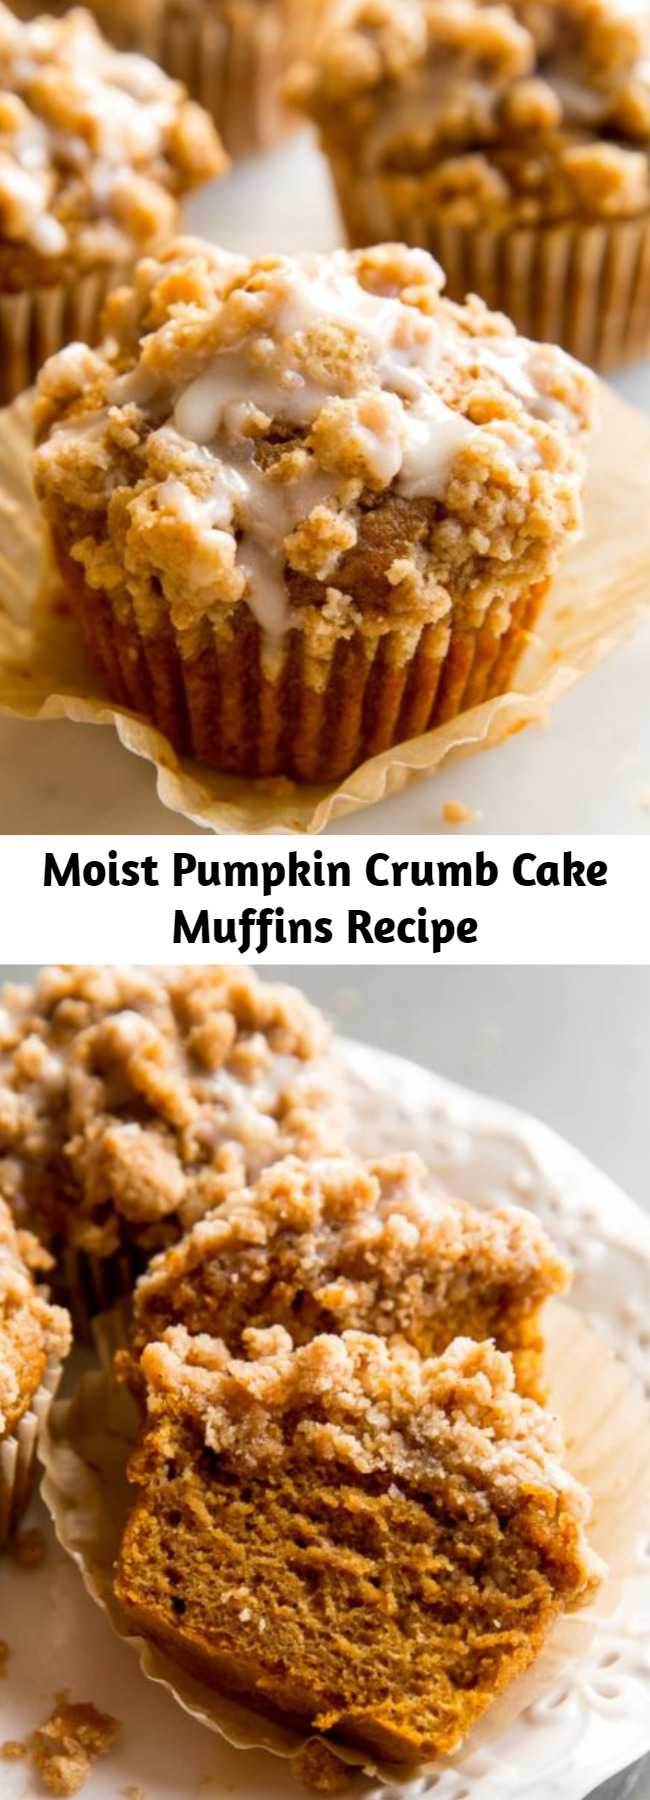 Moist Pumpkin Crumb Cake Muffins Recipe - These super soft pumpkin crumb cake muffins are topped with pumpkin spice crumbs and finished with sweet maple icing. They're a reader favorite and after baking one batch, you'll understand why!